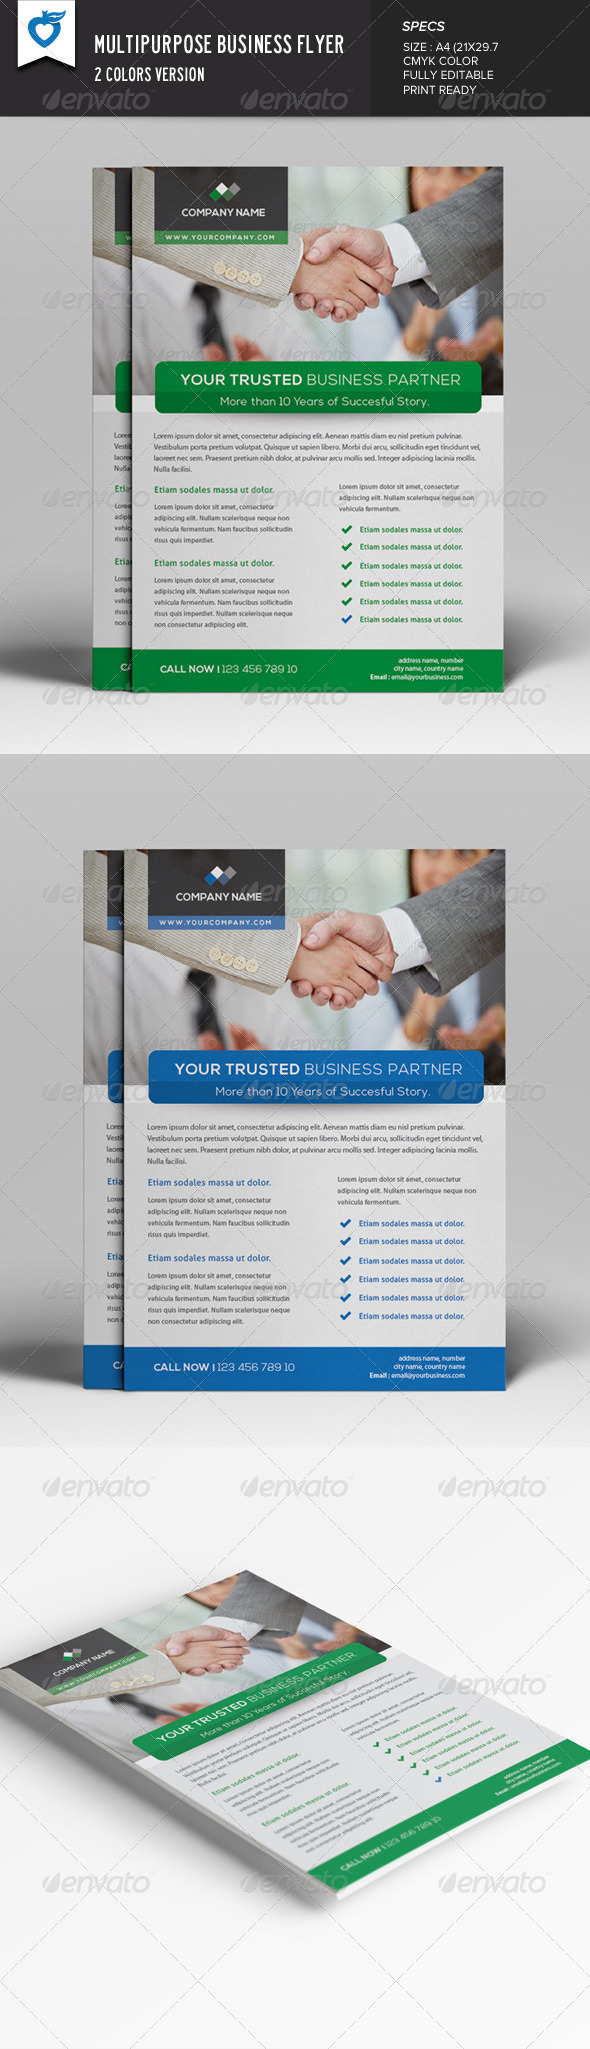 GraphicRiver Multipurpose Business Flyer 7675308